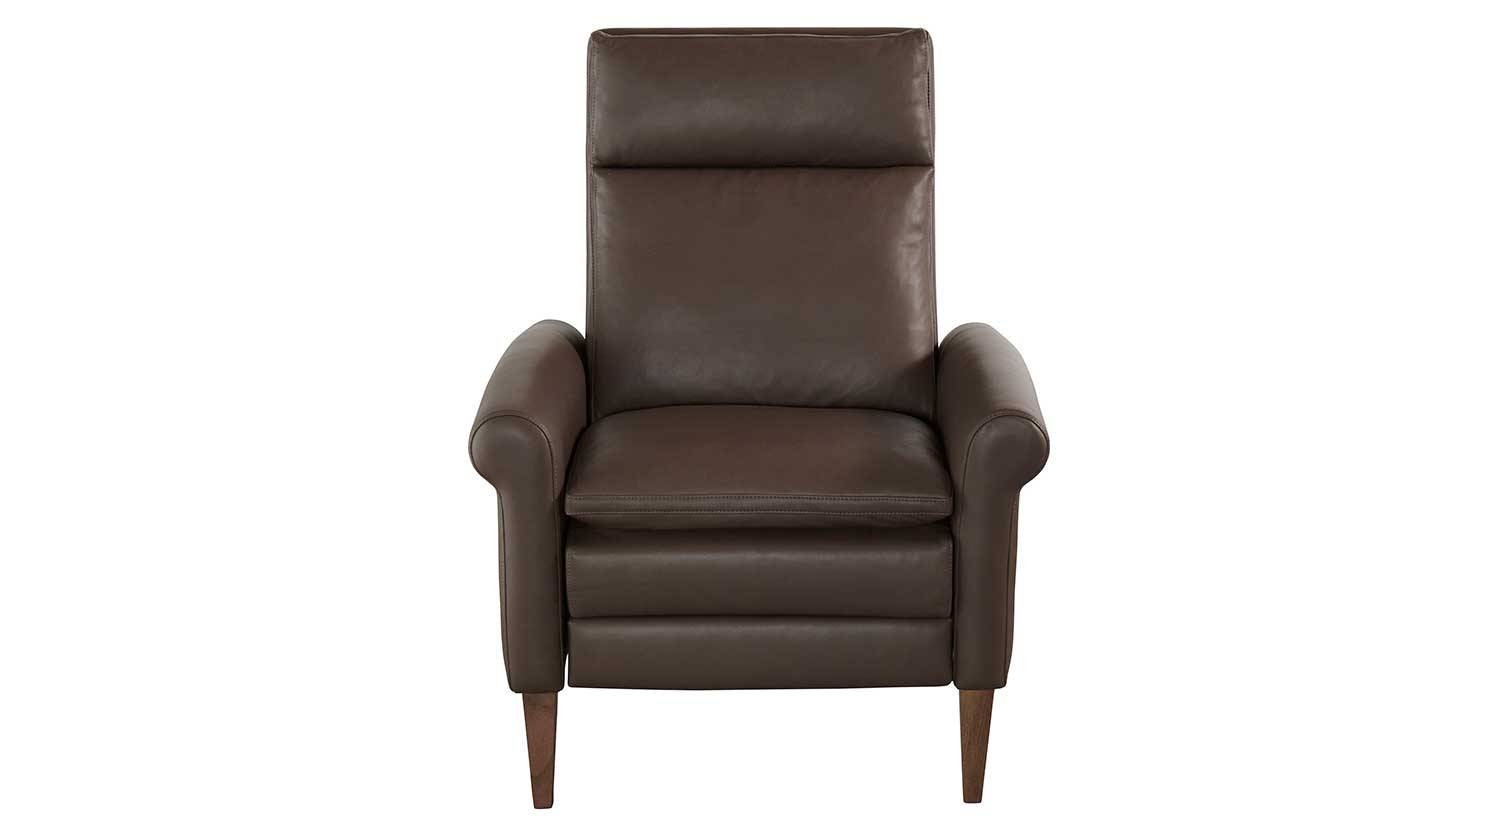 Circle Furniture Burke Recliner Leather Recliner Comfortable